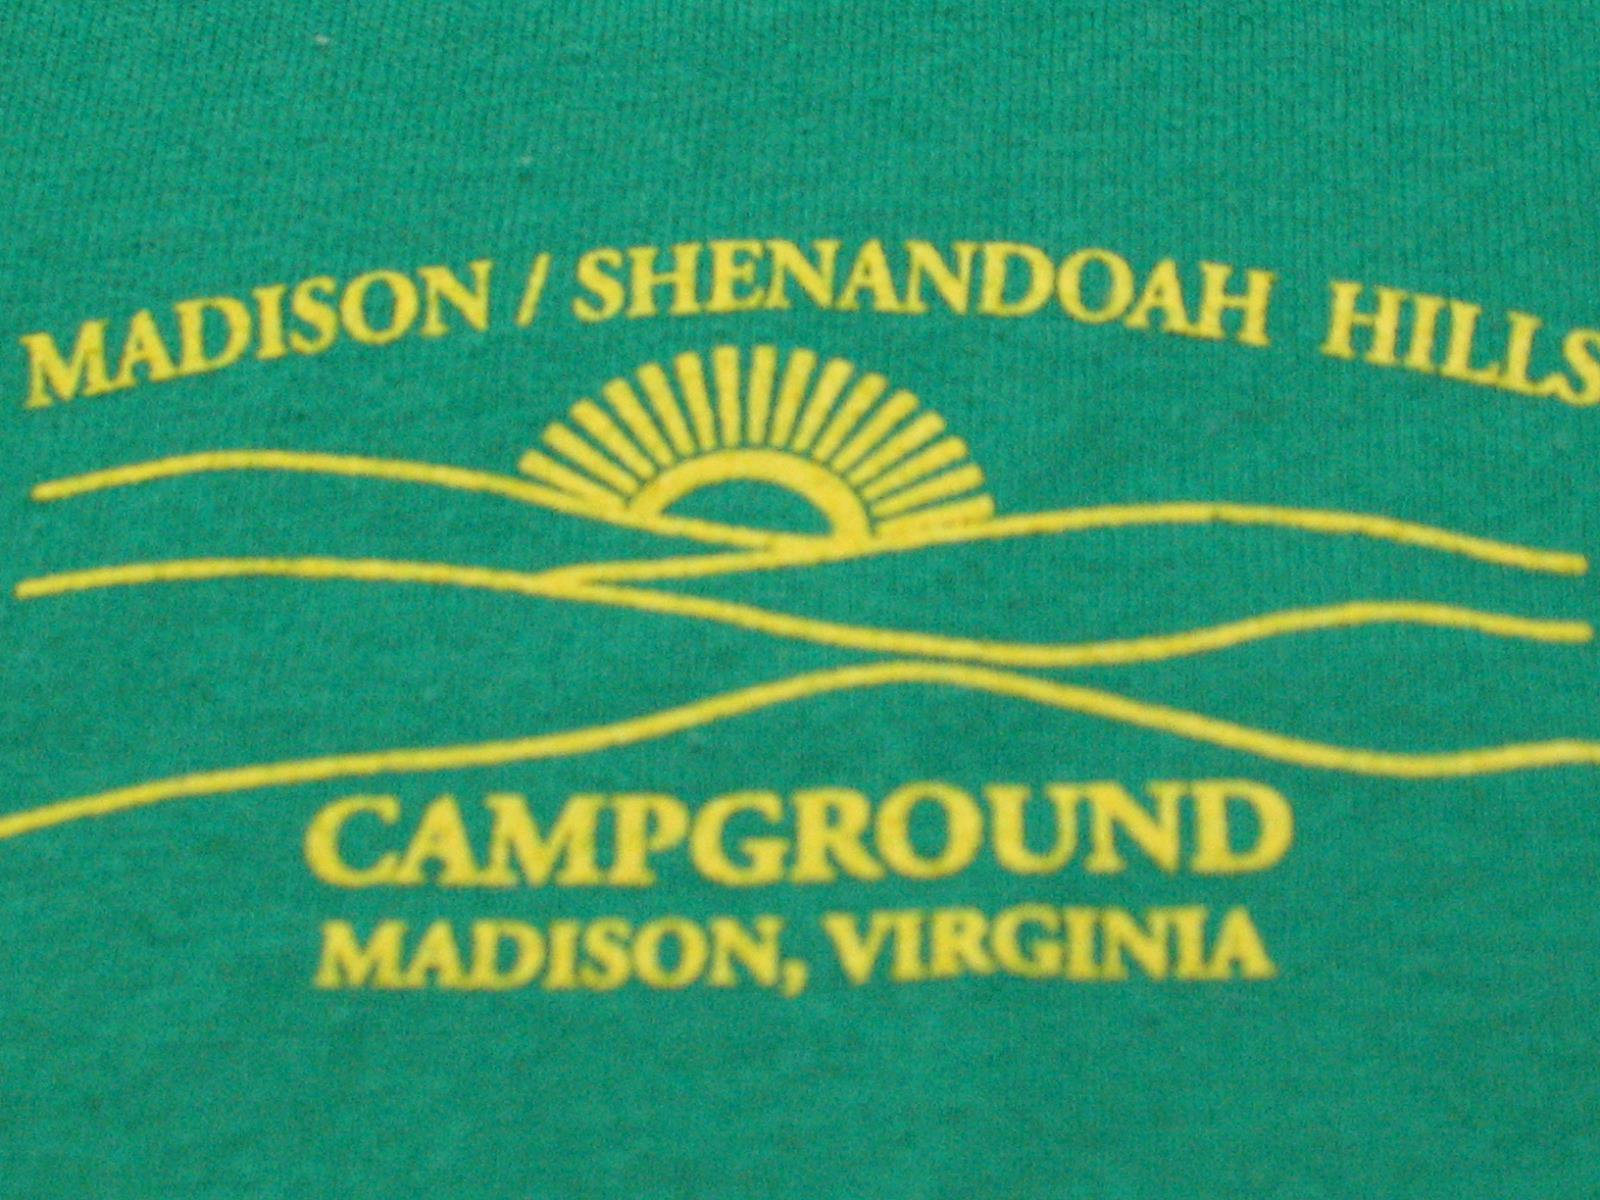 shenandoah hills campground logo in madison virginia